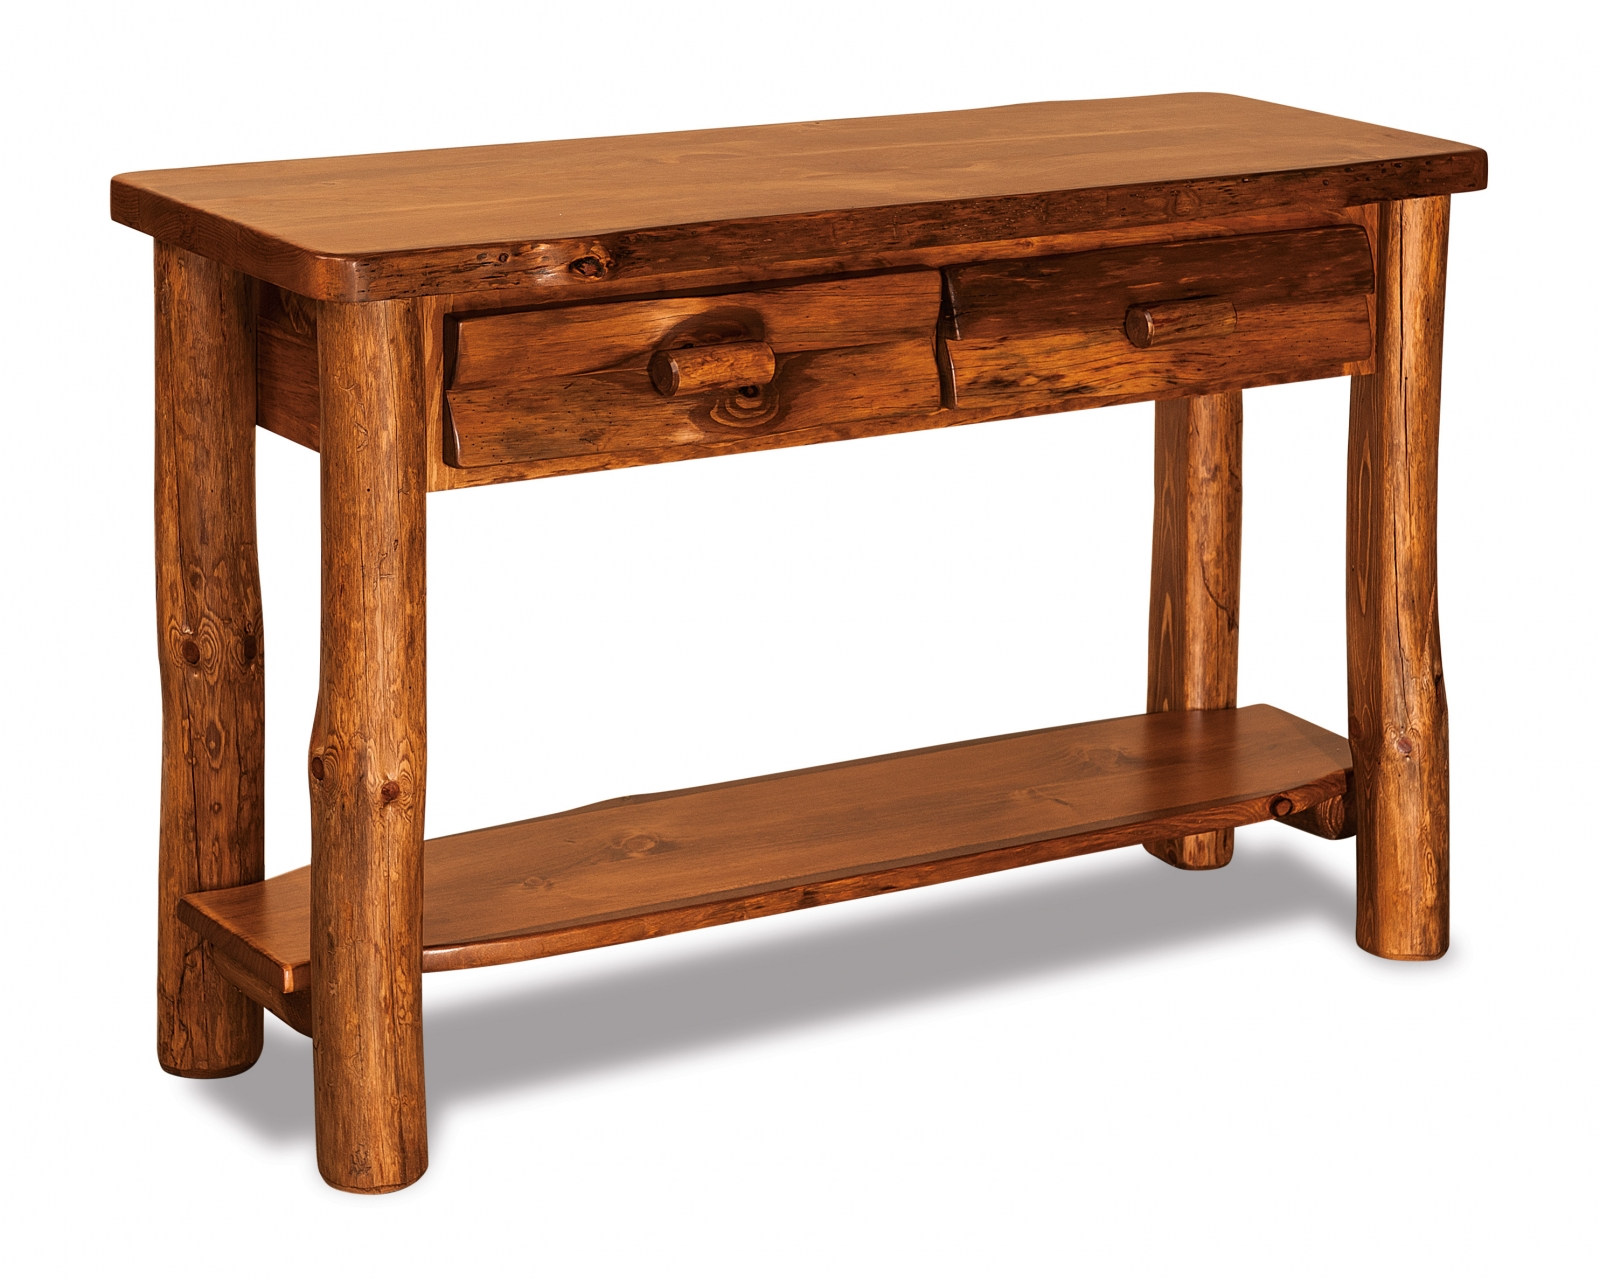 Rustic Pine Sofa Table With Drawer In SA Stain